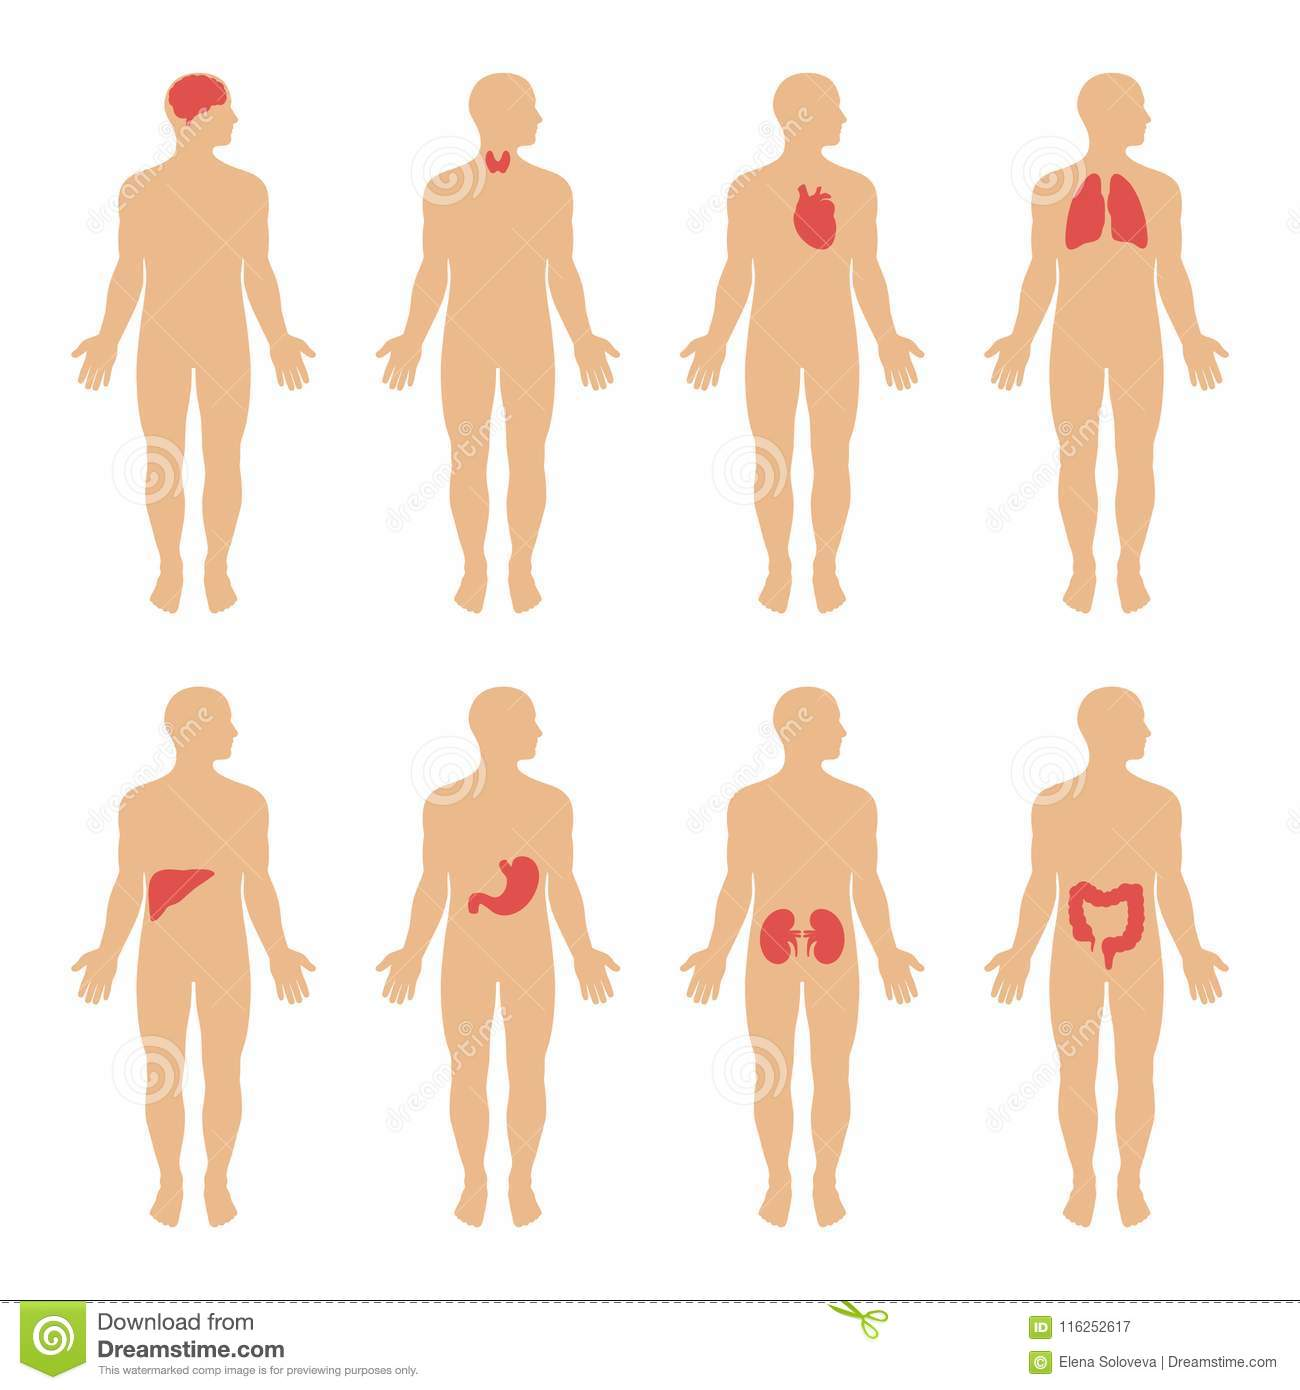 Diagram showing human body systems illustration